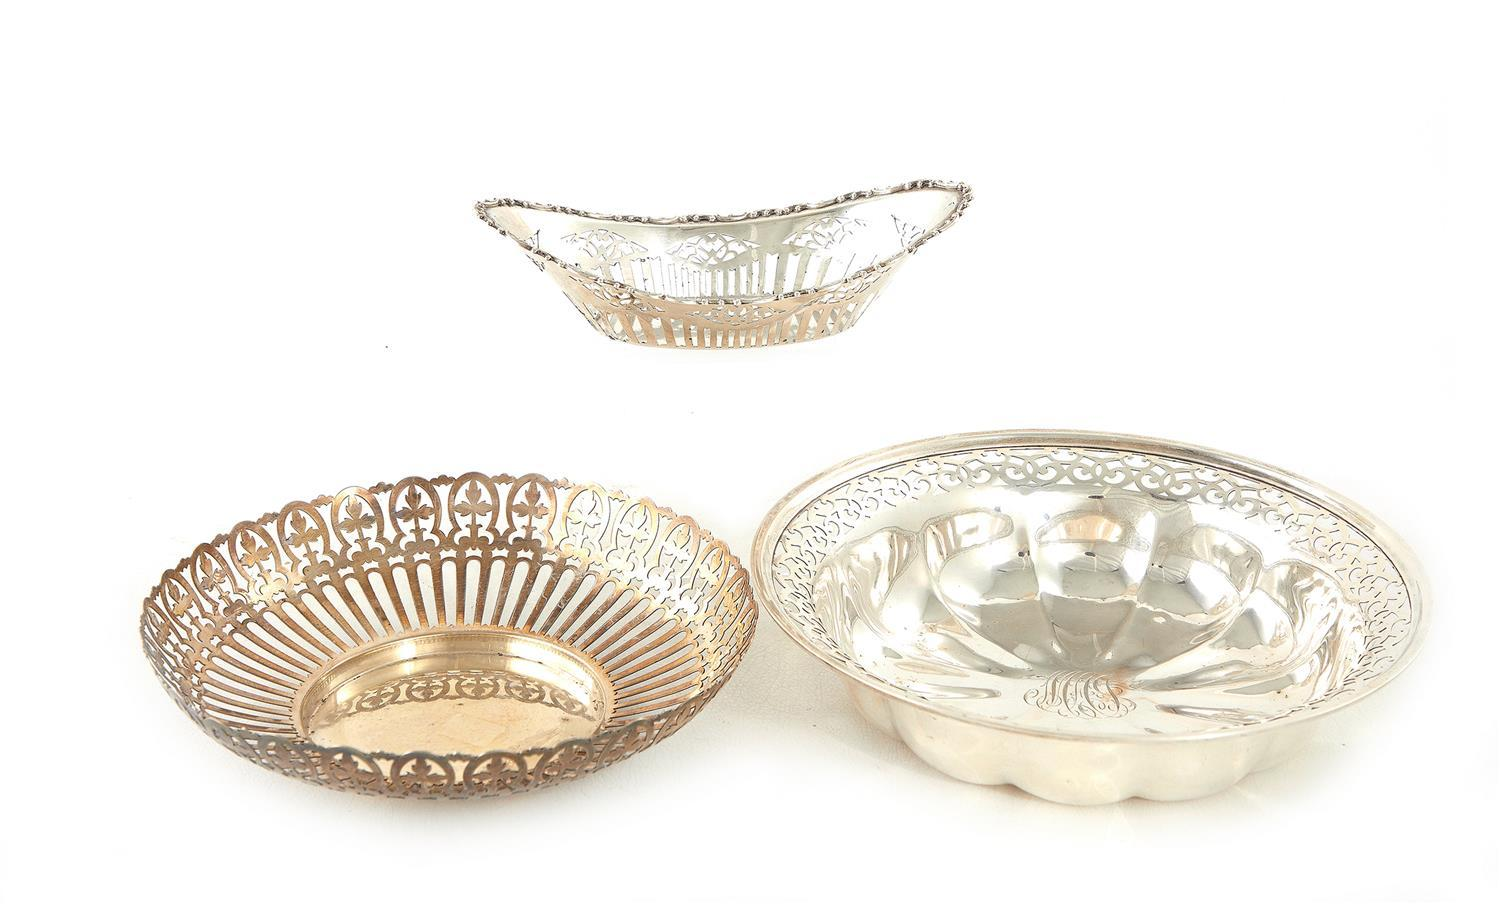 American reticulated silver dish and bowls (3pcs)